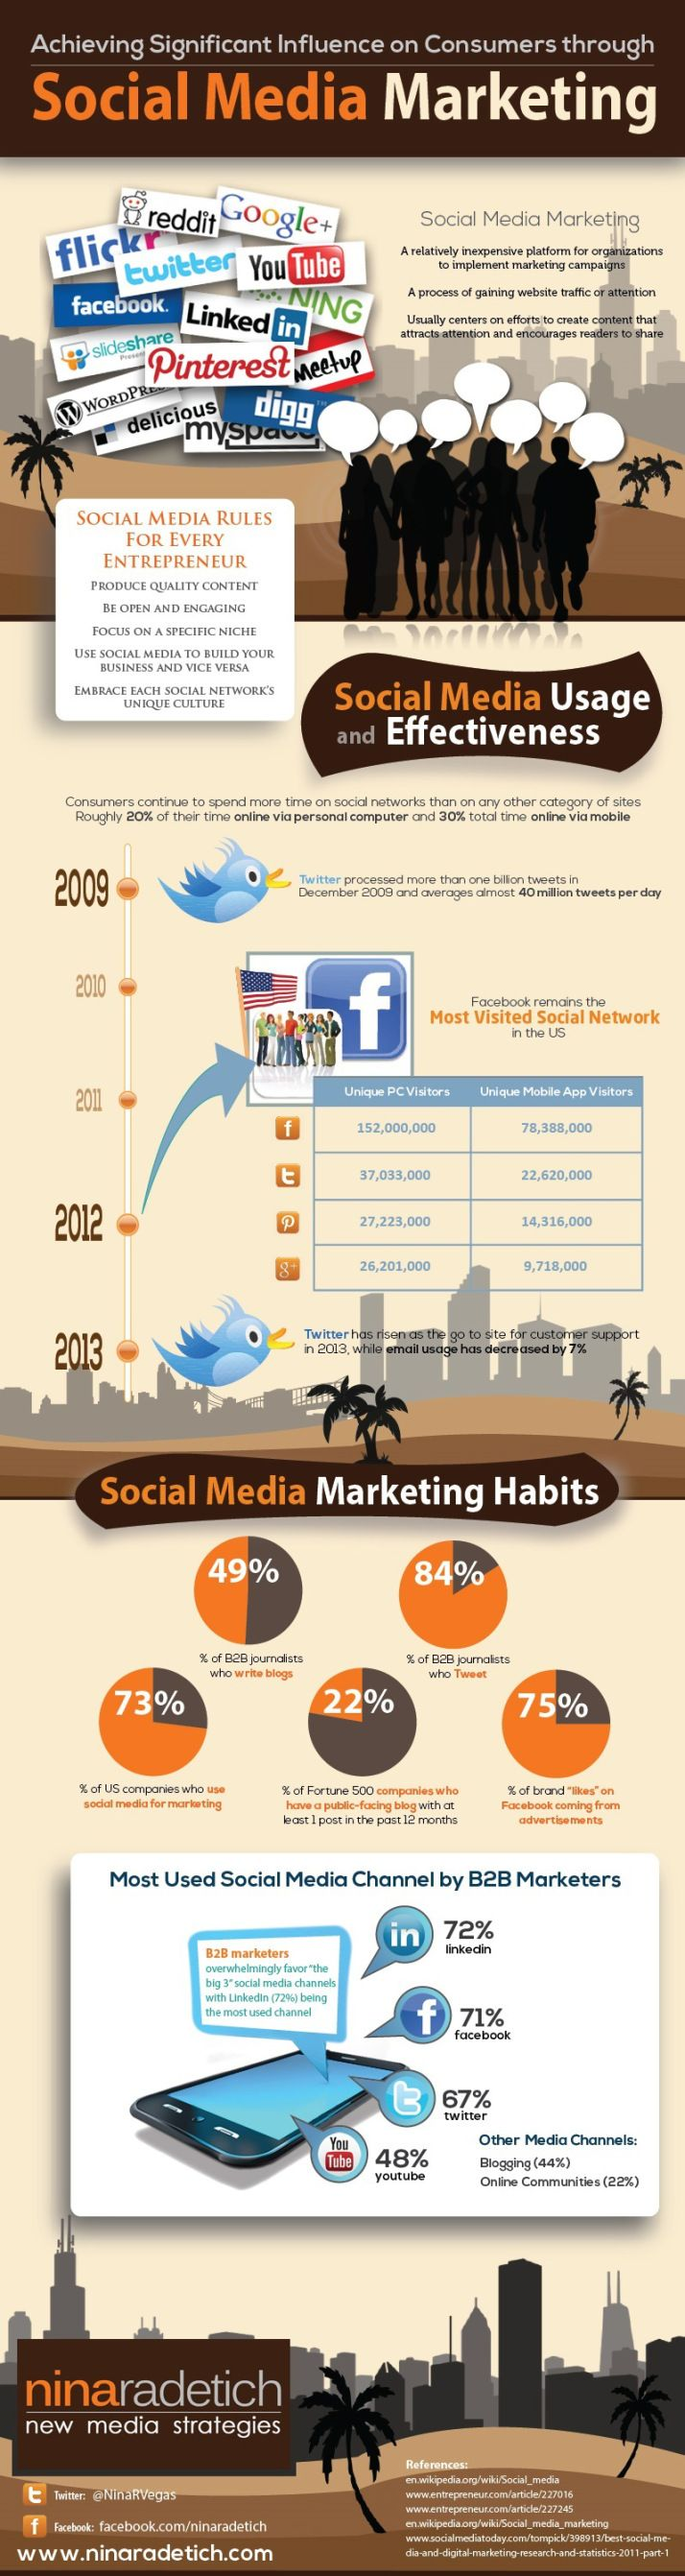 Smarte tips for social media markedsføring #infografia #infographic #marketing